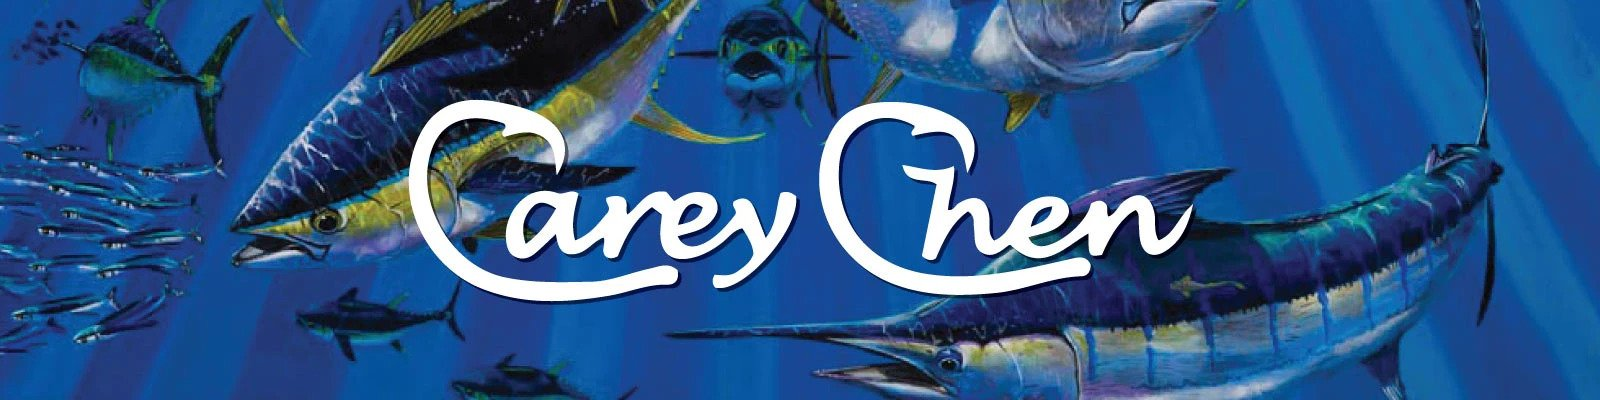 Carey Chen Big Game Lures Banner